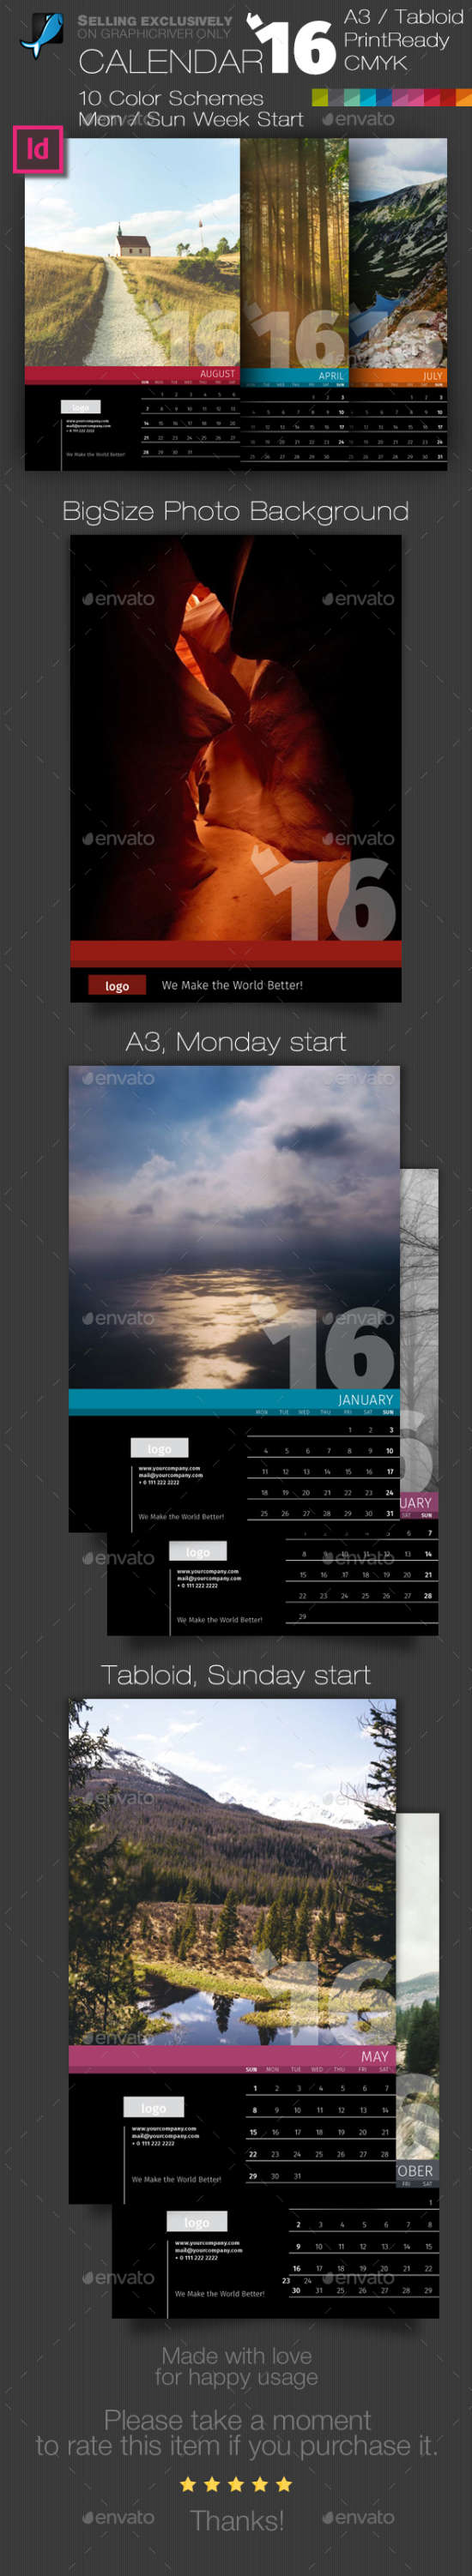 wall-12-pages-calendar-2016-with-big-size-photo-background-—-a3-and-tabloid